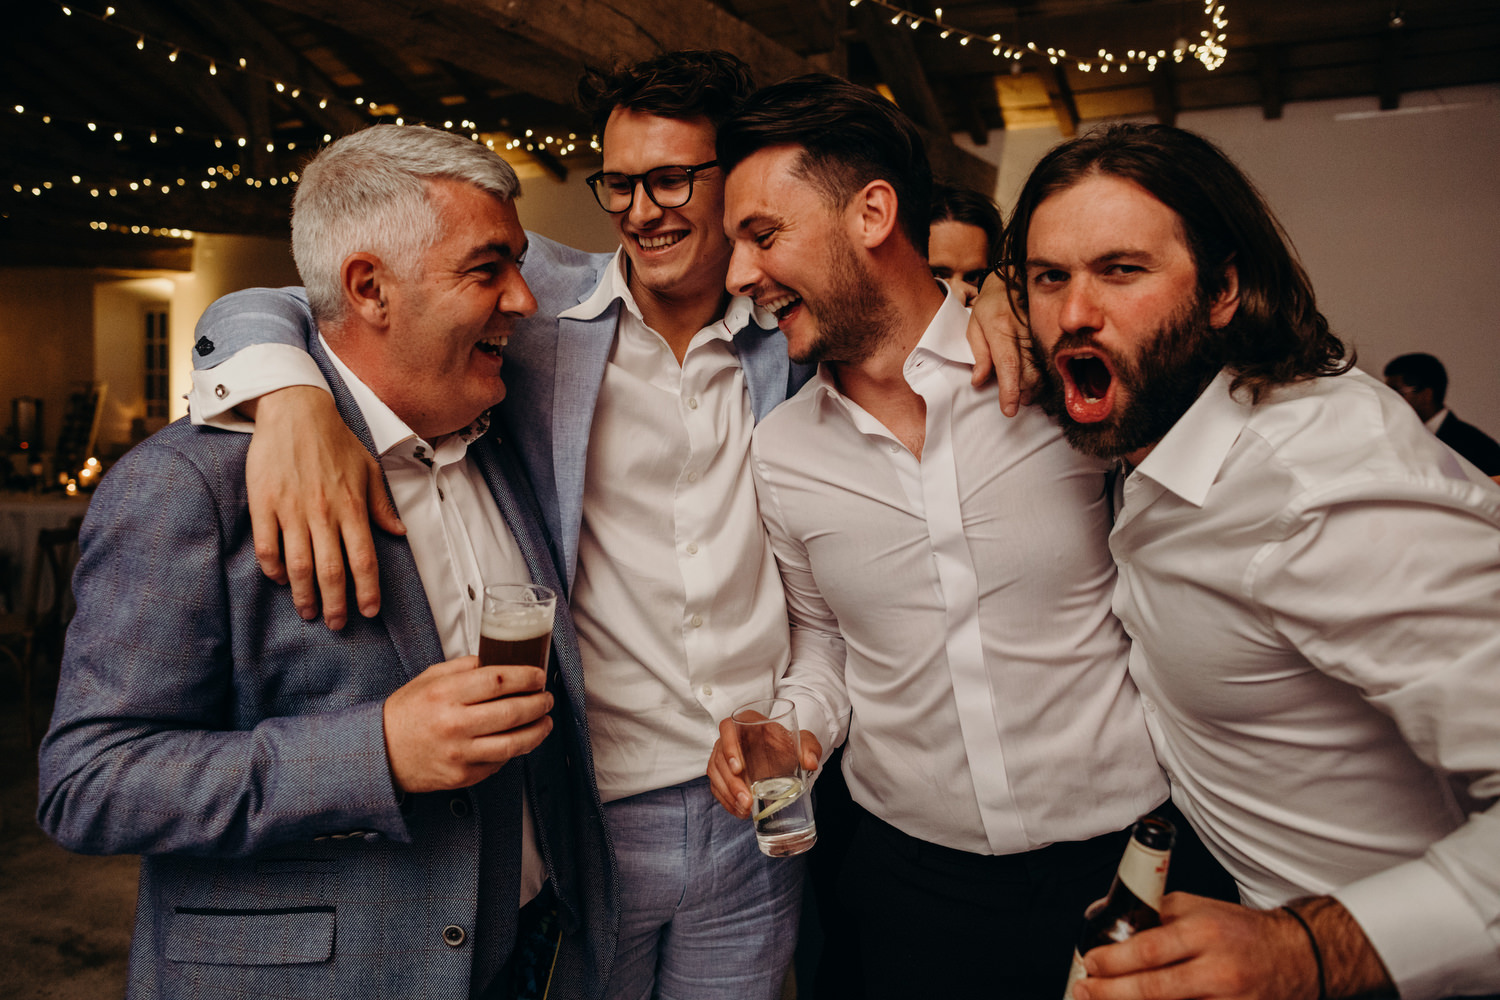 guests hug at wedding